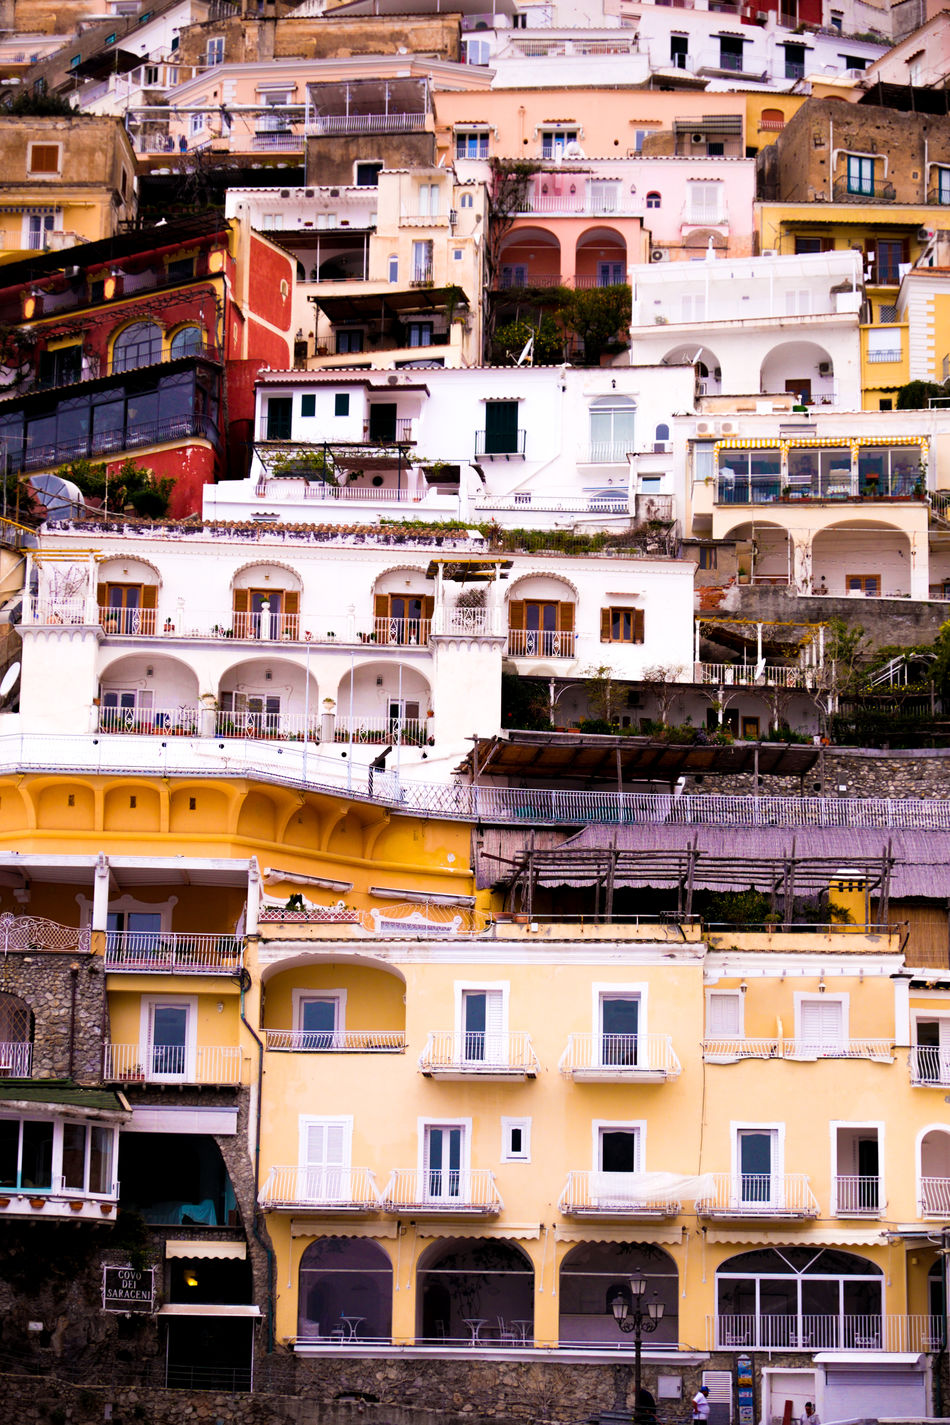 Amalfi Coast Architecture Balcony Building Exterior Built Structure City Cityscape Crowded Crowded Place Crowdedplace Day EyeEm New Here Full Frame Italian Architecture Italian Town Italy Outdoors Positano Positano, Italy Positanocoast Residential Building Sky Steep Hill